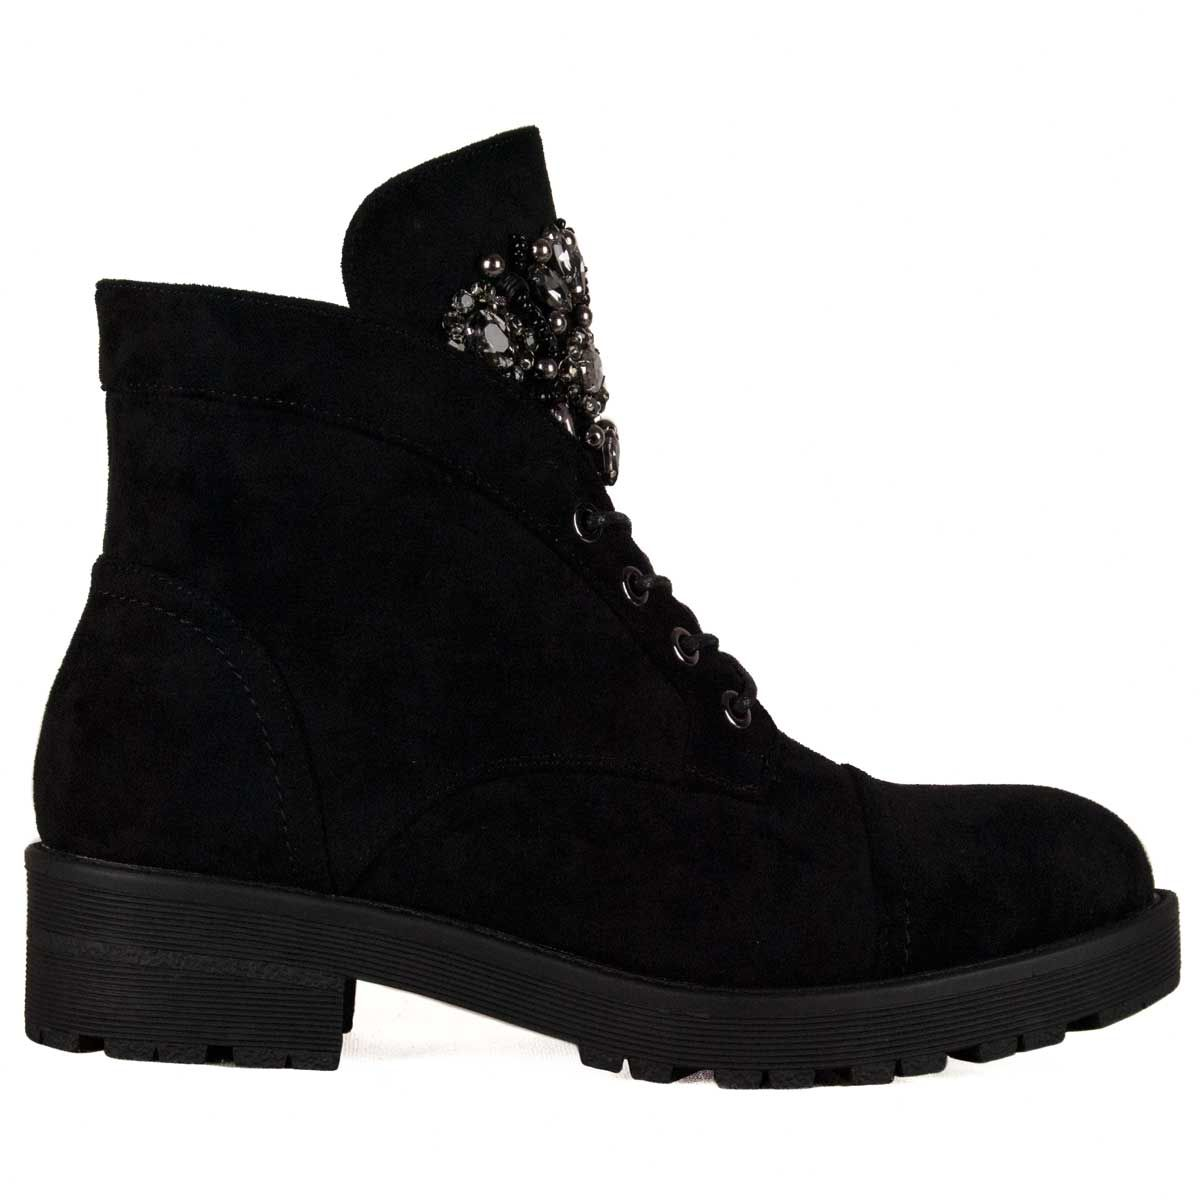 Montevita Lace Up Ankle Boot in Black